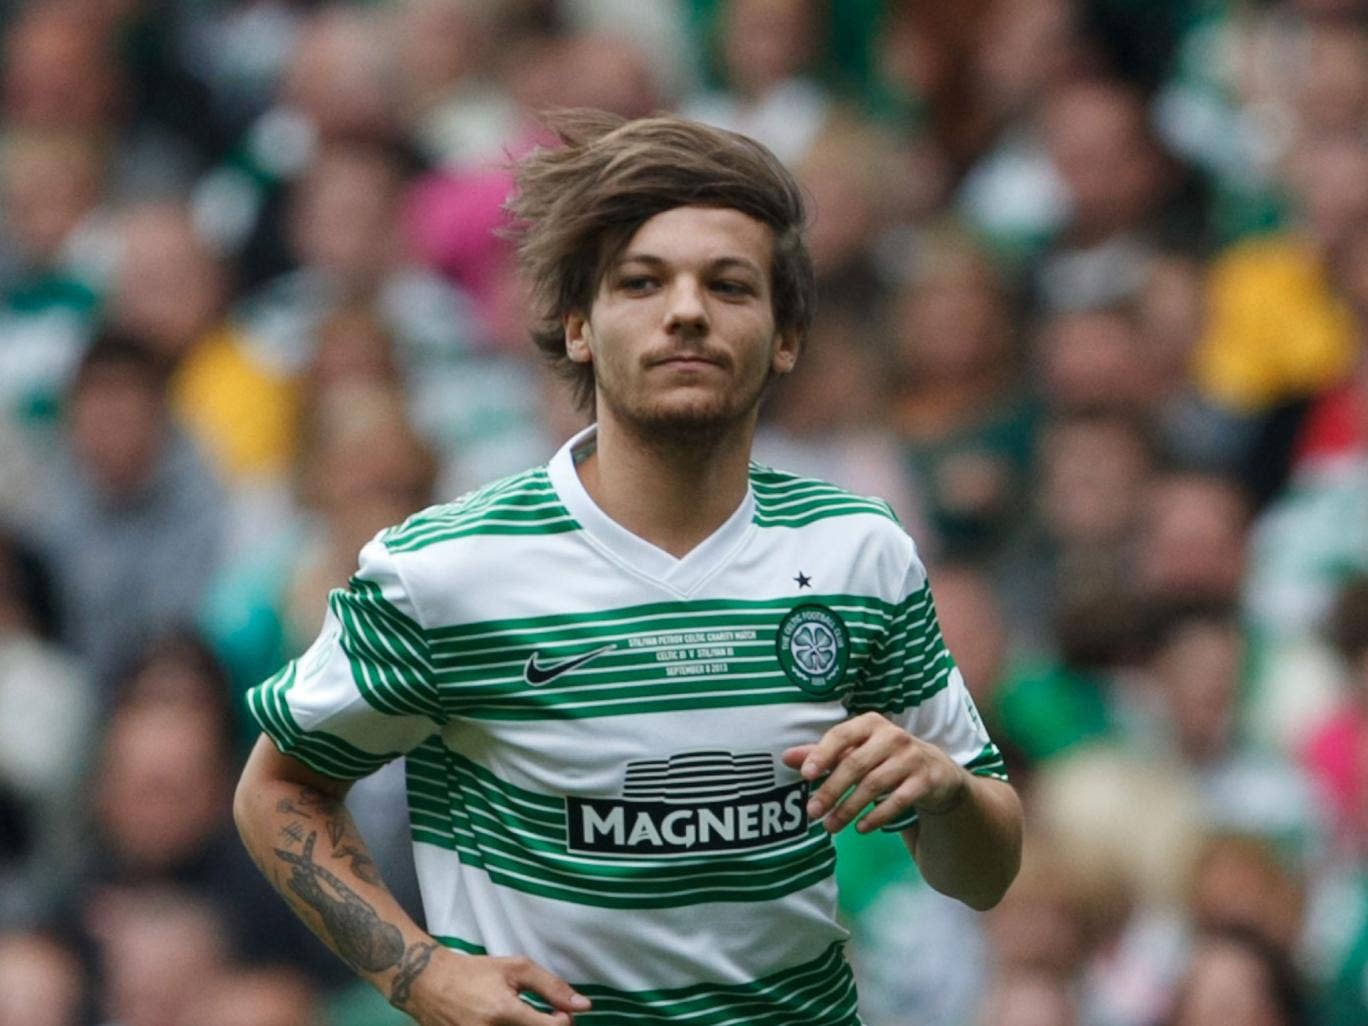 Hopefully Tomlinson will do better than during his last match